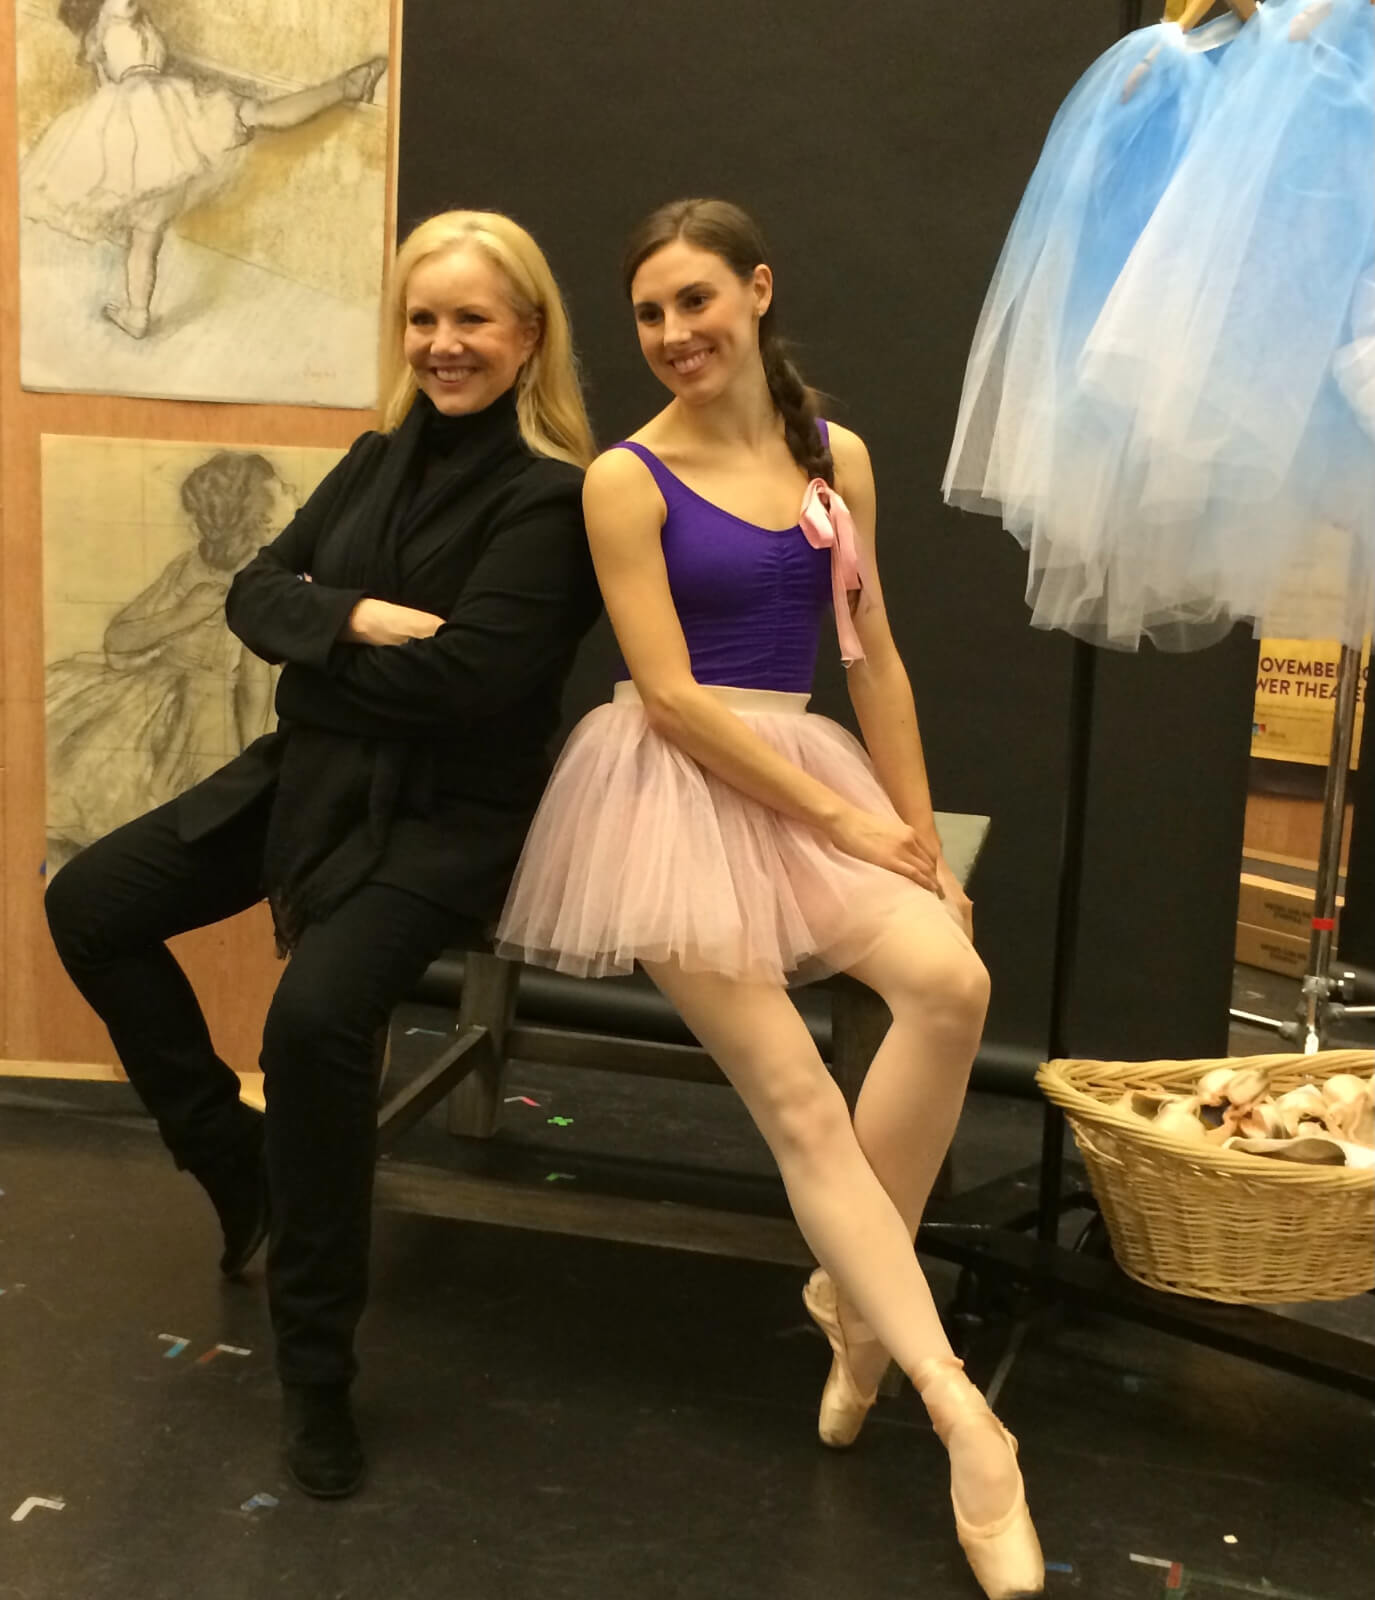 Stro and Tiler Peck, both seated and posing for Little Dancer press photos. Tiler is in a tutu while Stro is in her signature blacks.